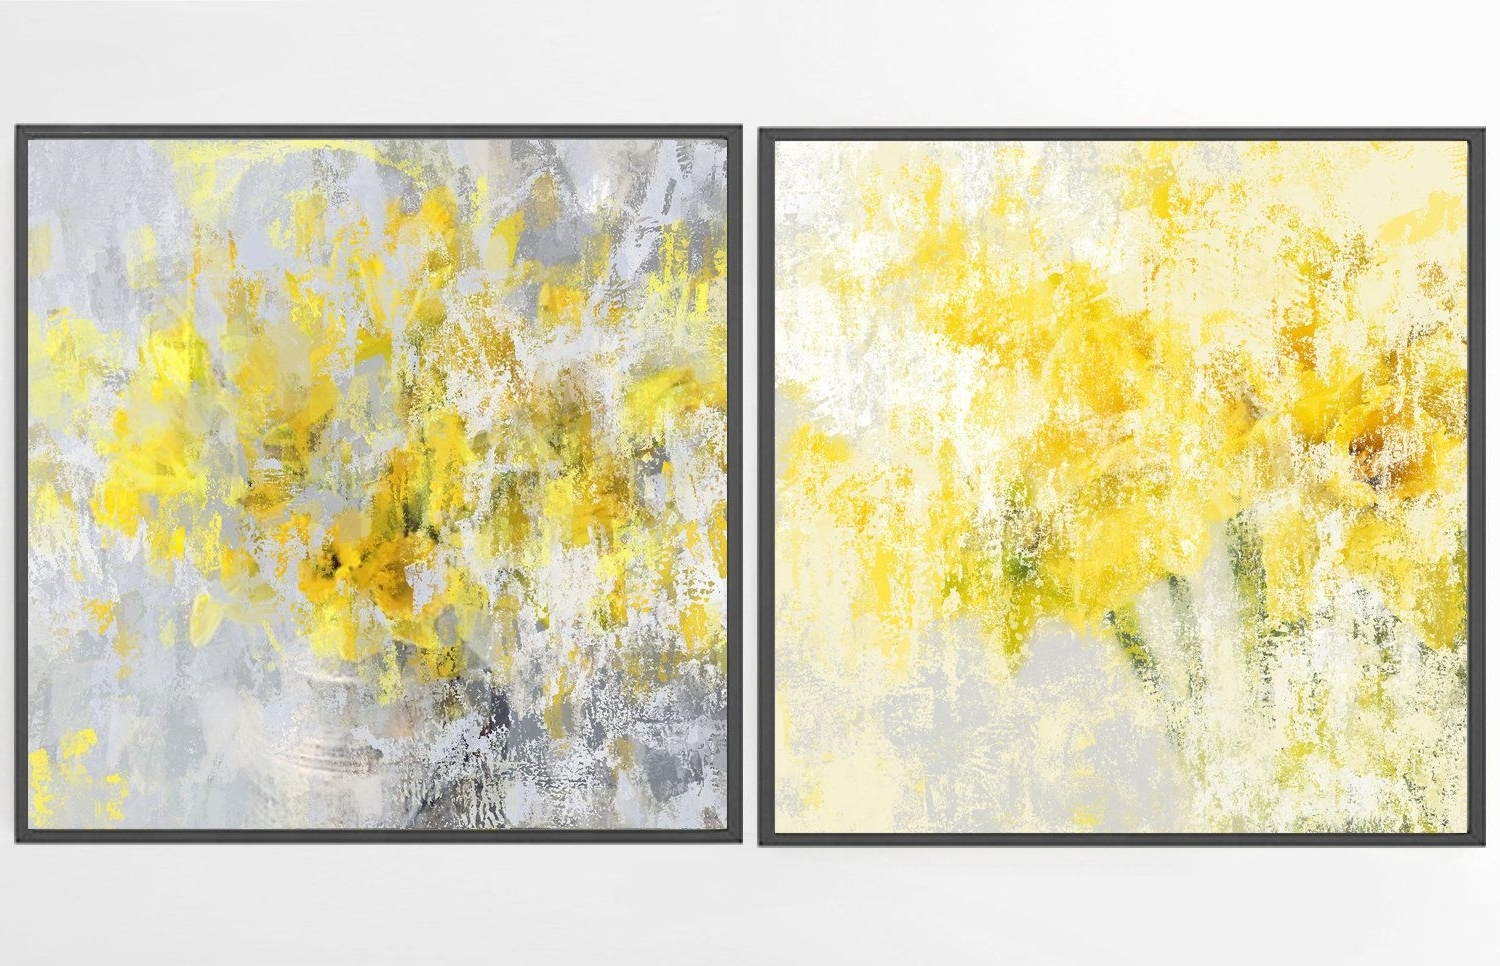 Yellow And Gray Wall Art Throughout Most Popular Large Abstract Painting, Wall Art Set Of 2, Yellow Painting Print (View 11 of 15)